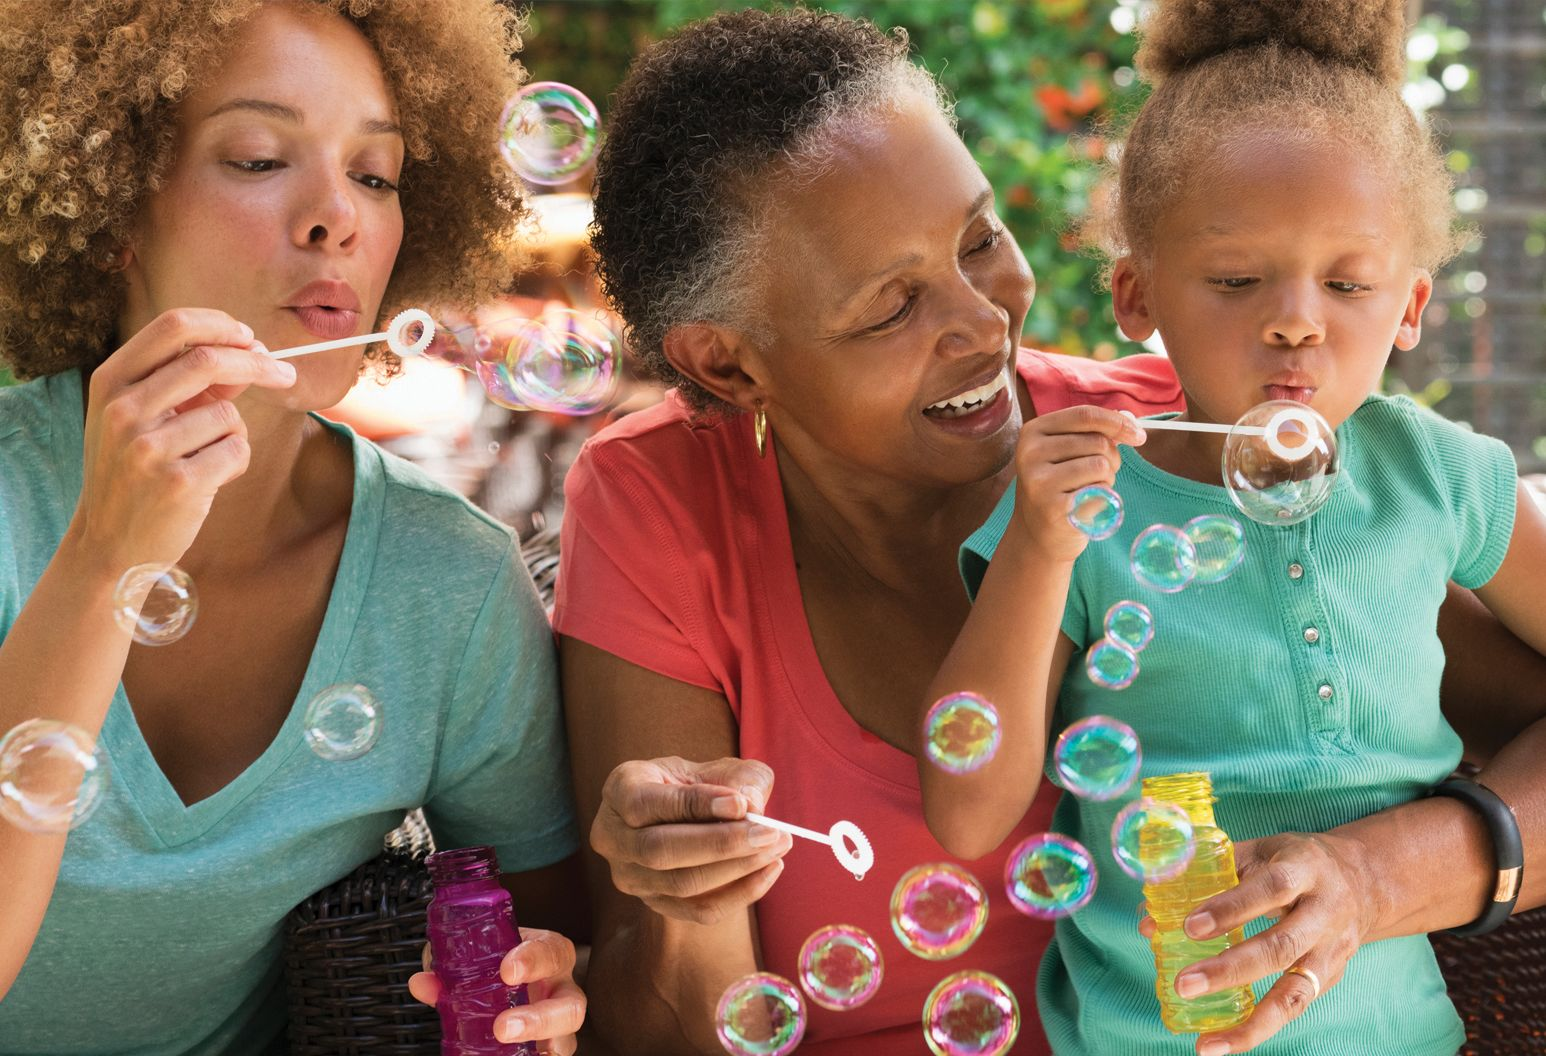 Three generations of women, grandmother in red shirt and mom and 5-year-old daughter in matching green shirts, blow bubbles together.